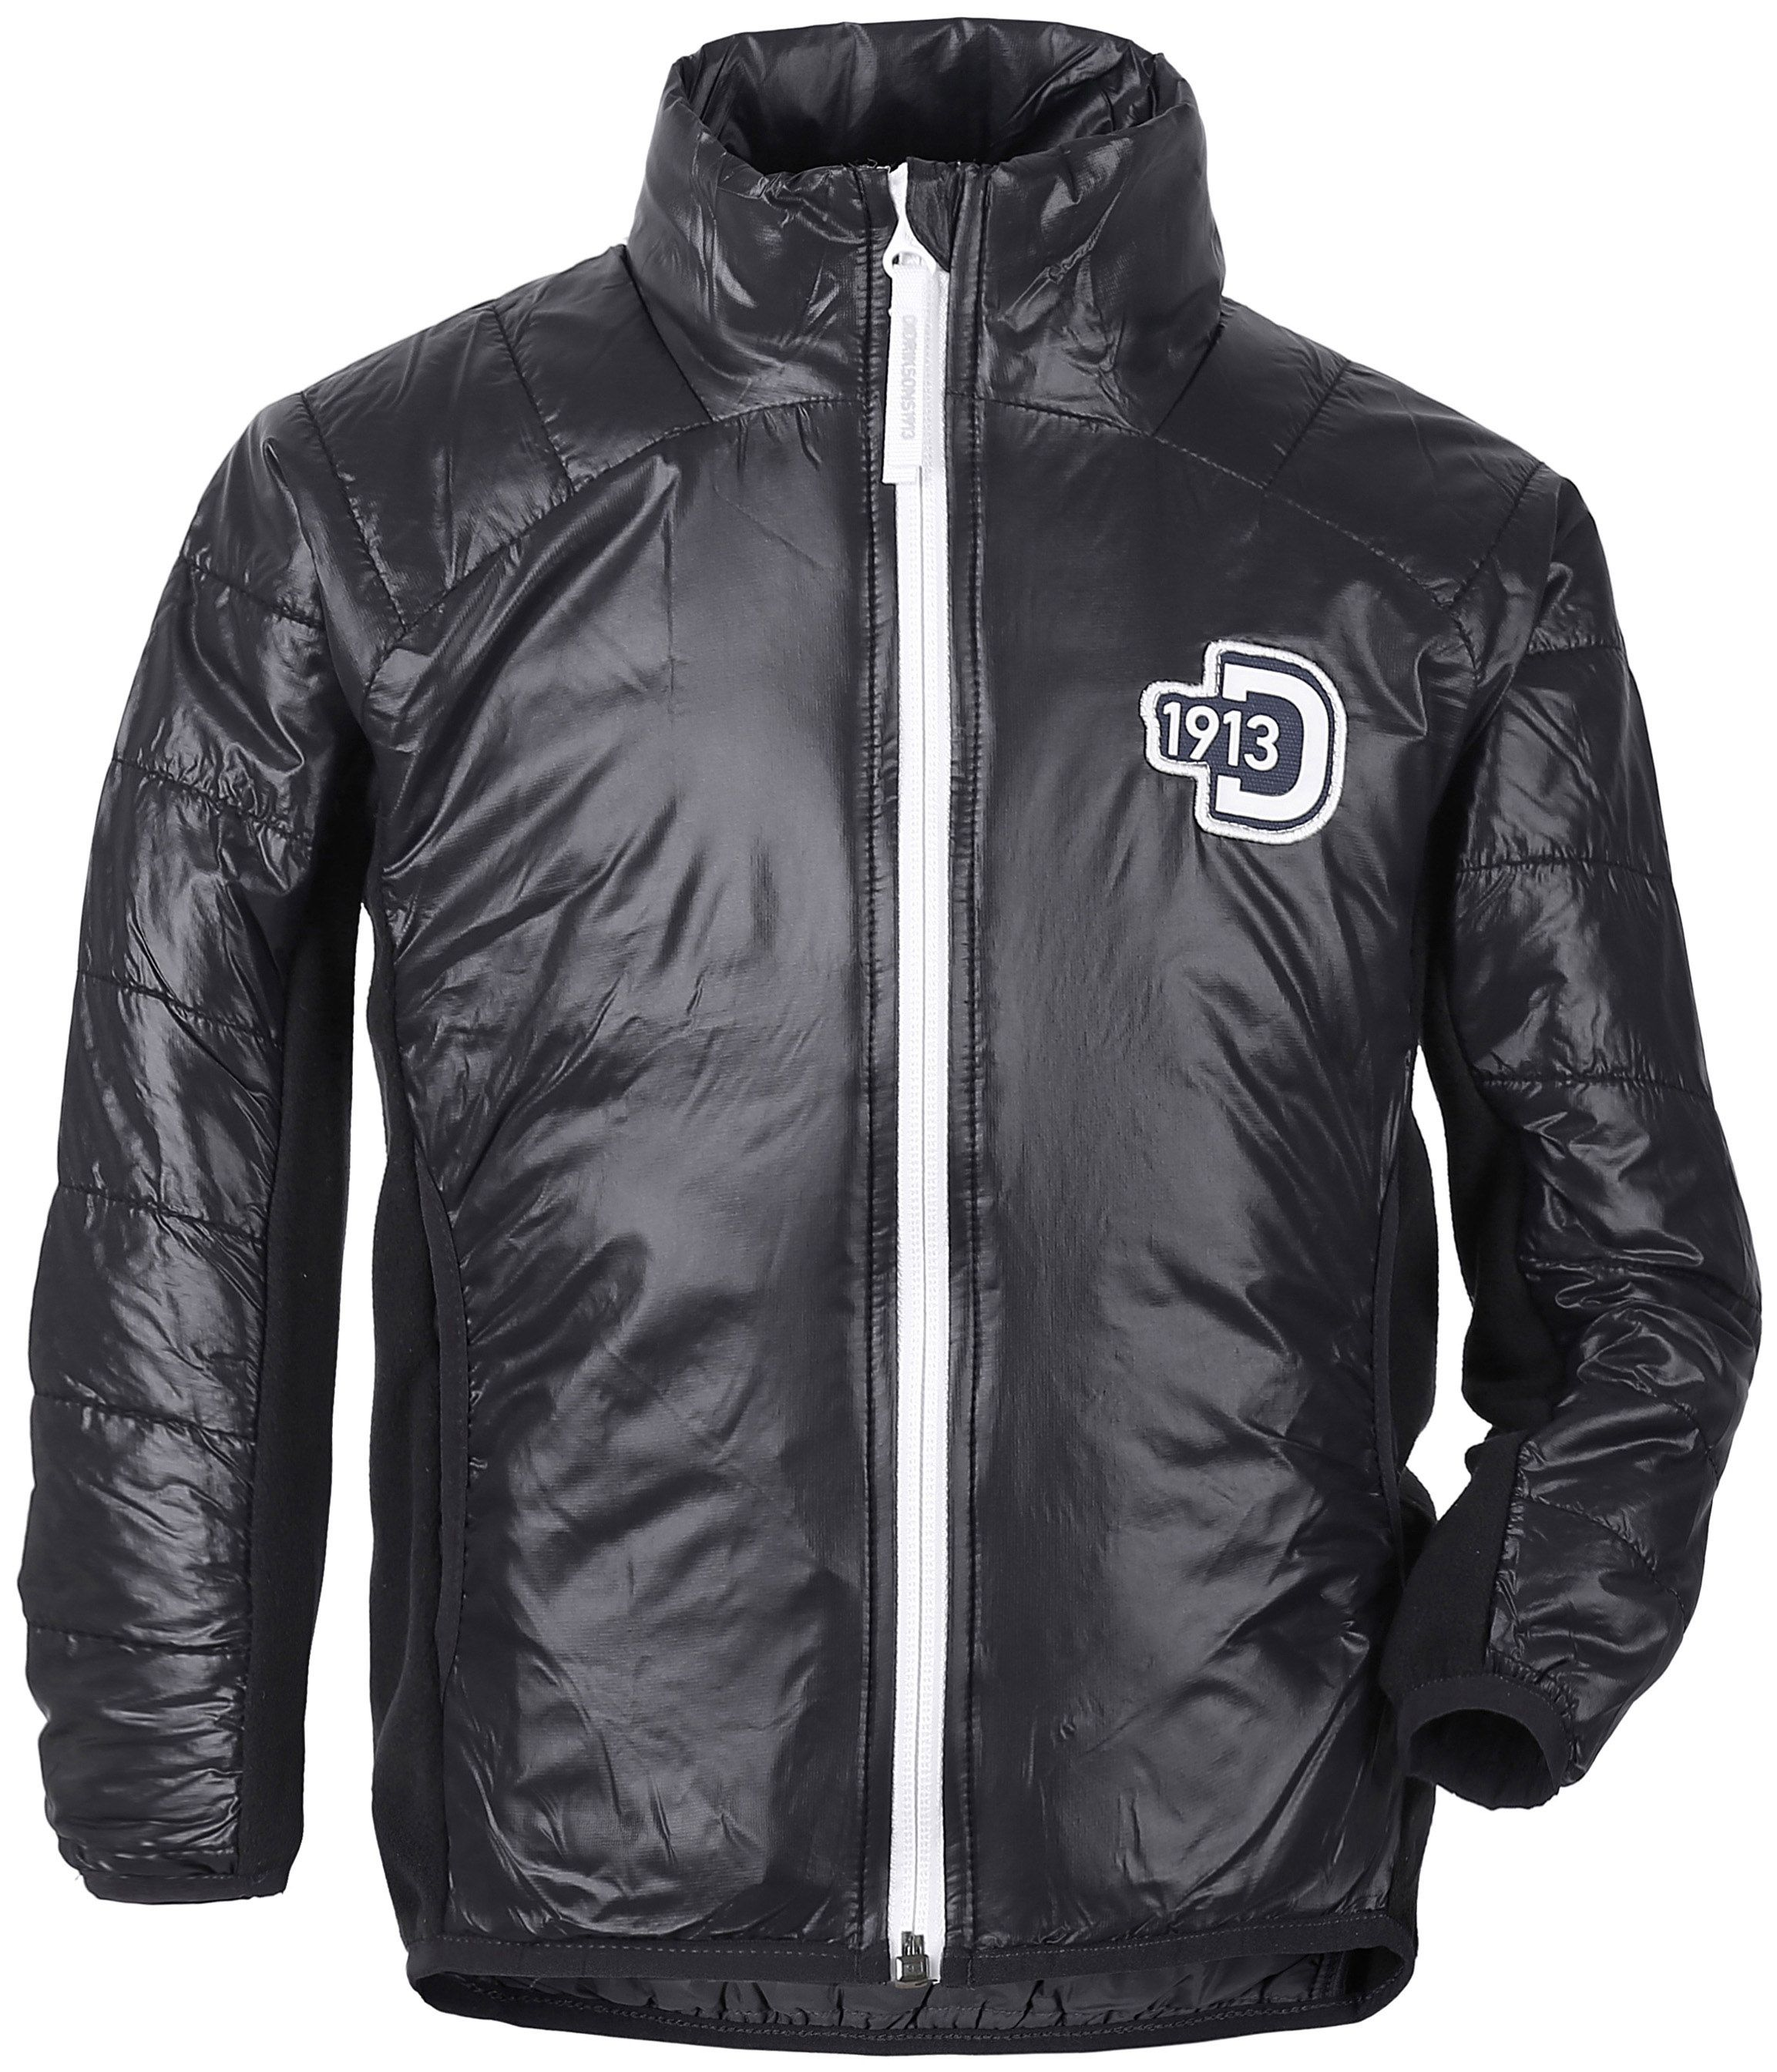 Image of Jakke fra Didriksons - Råne Kids Jacket - Black (501721-060)